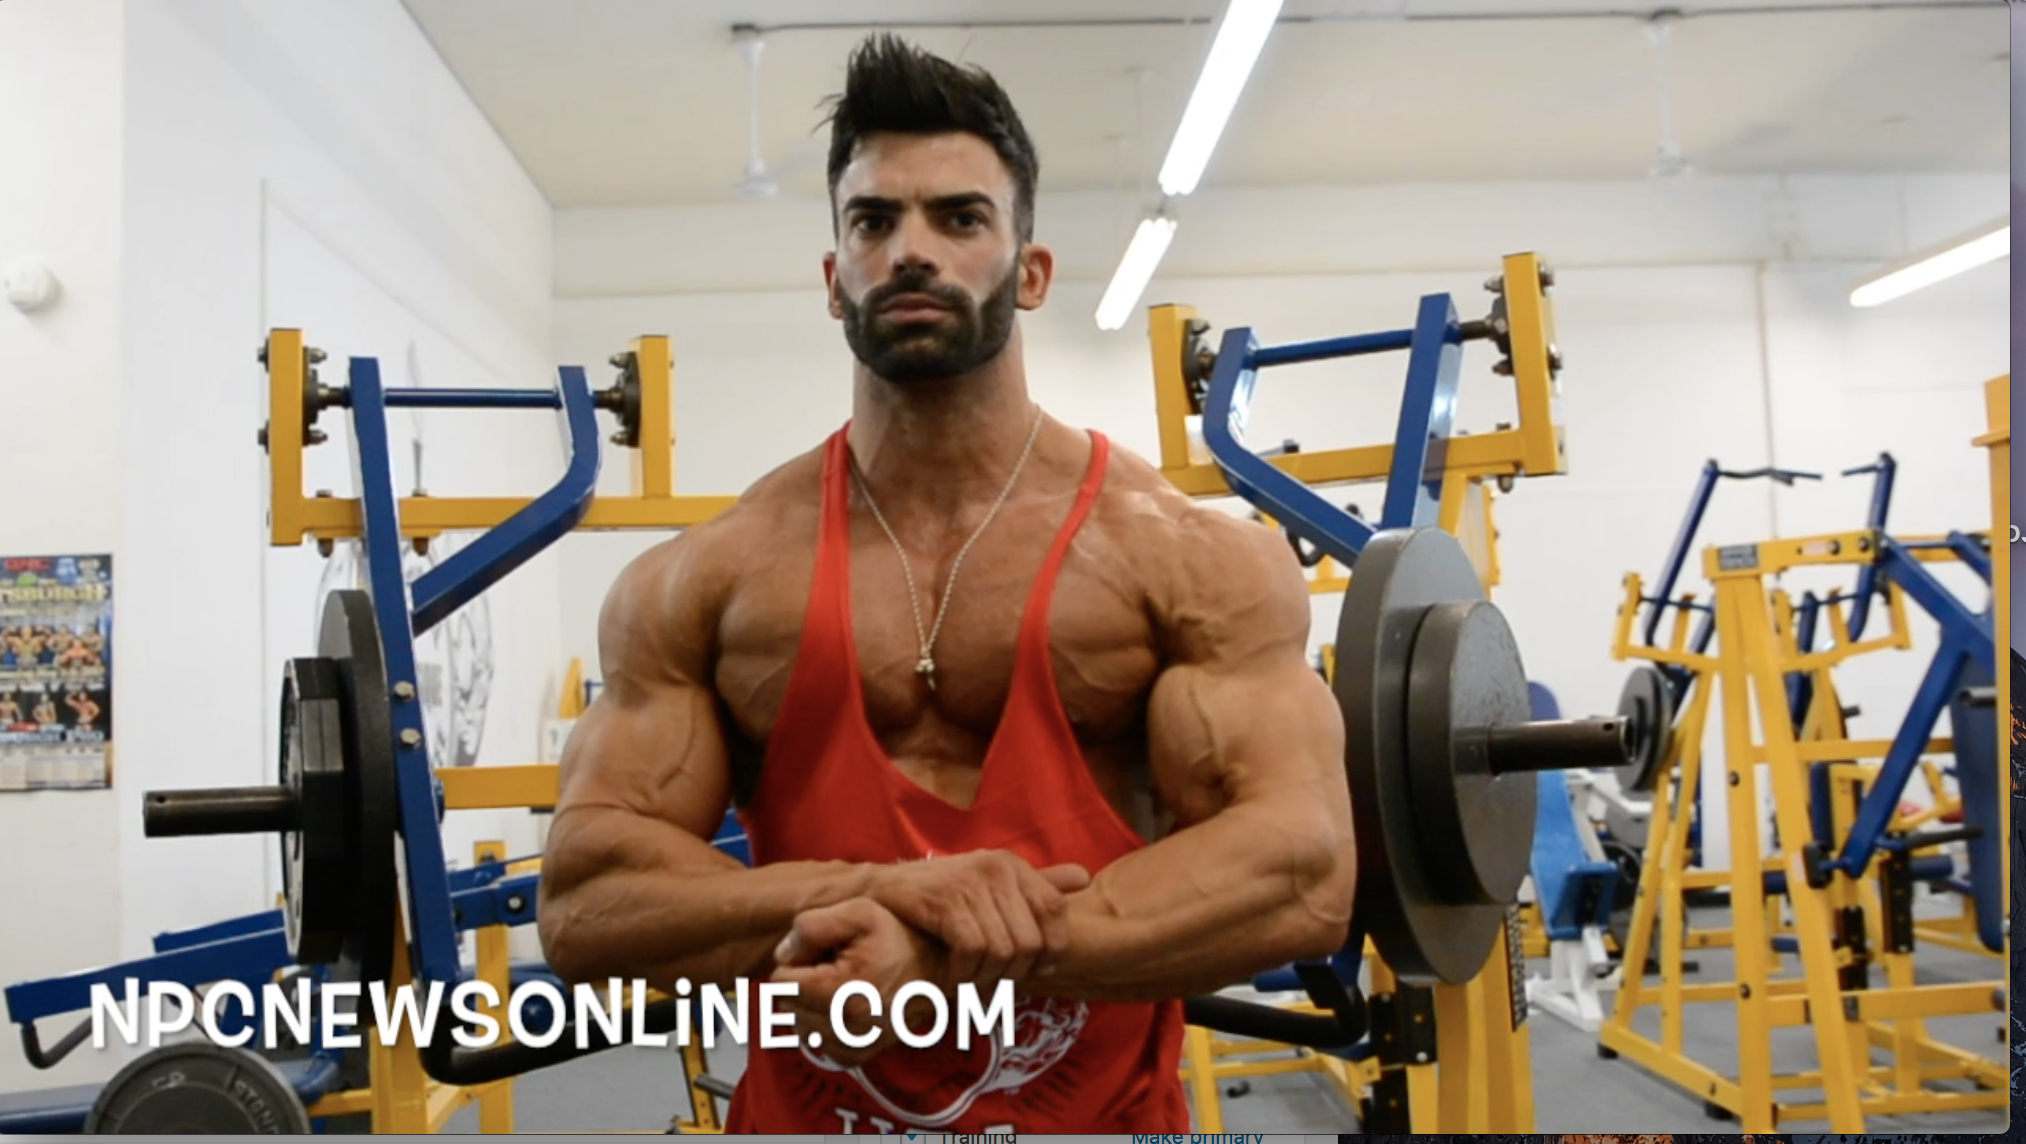 IFBB Pro Sergi Constance Chest/Triceps Workout At The NPC Photo Gym. Filmed By J.M. Manion: See Video